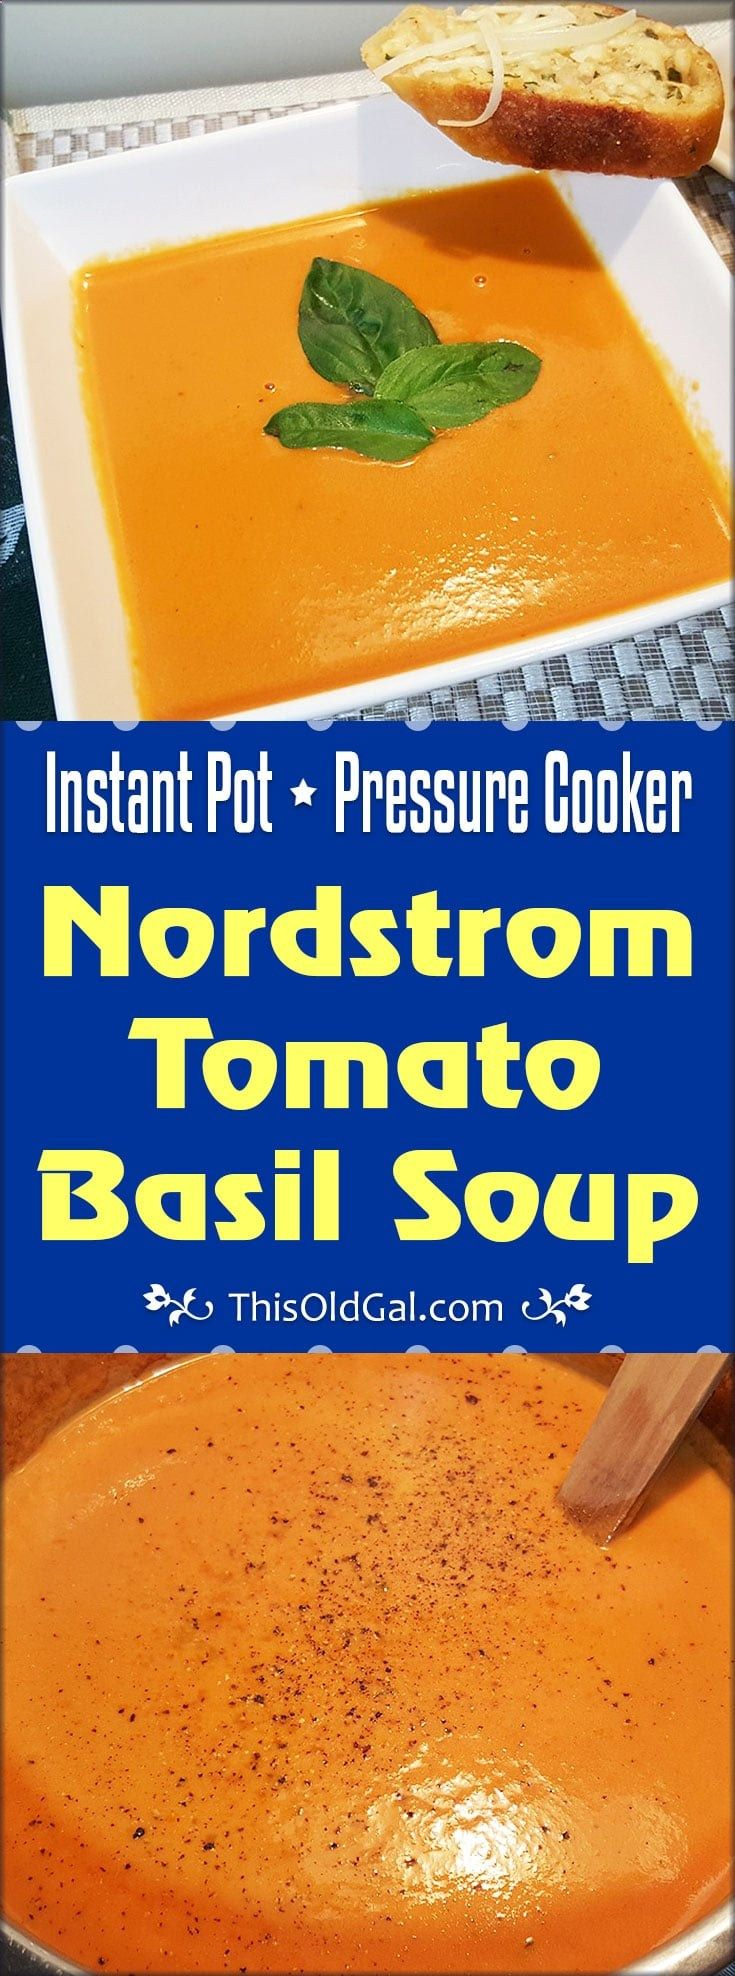 This Pressure Cooker Nordstrom Tomato Basil Soup is rich and creamy, just like you get at the famous Nordstrom Restaurant. via This Old Gal